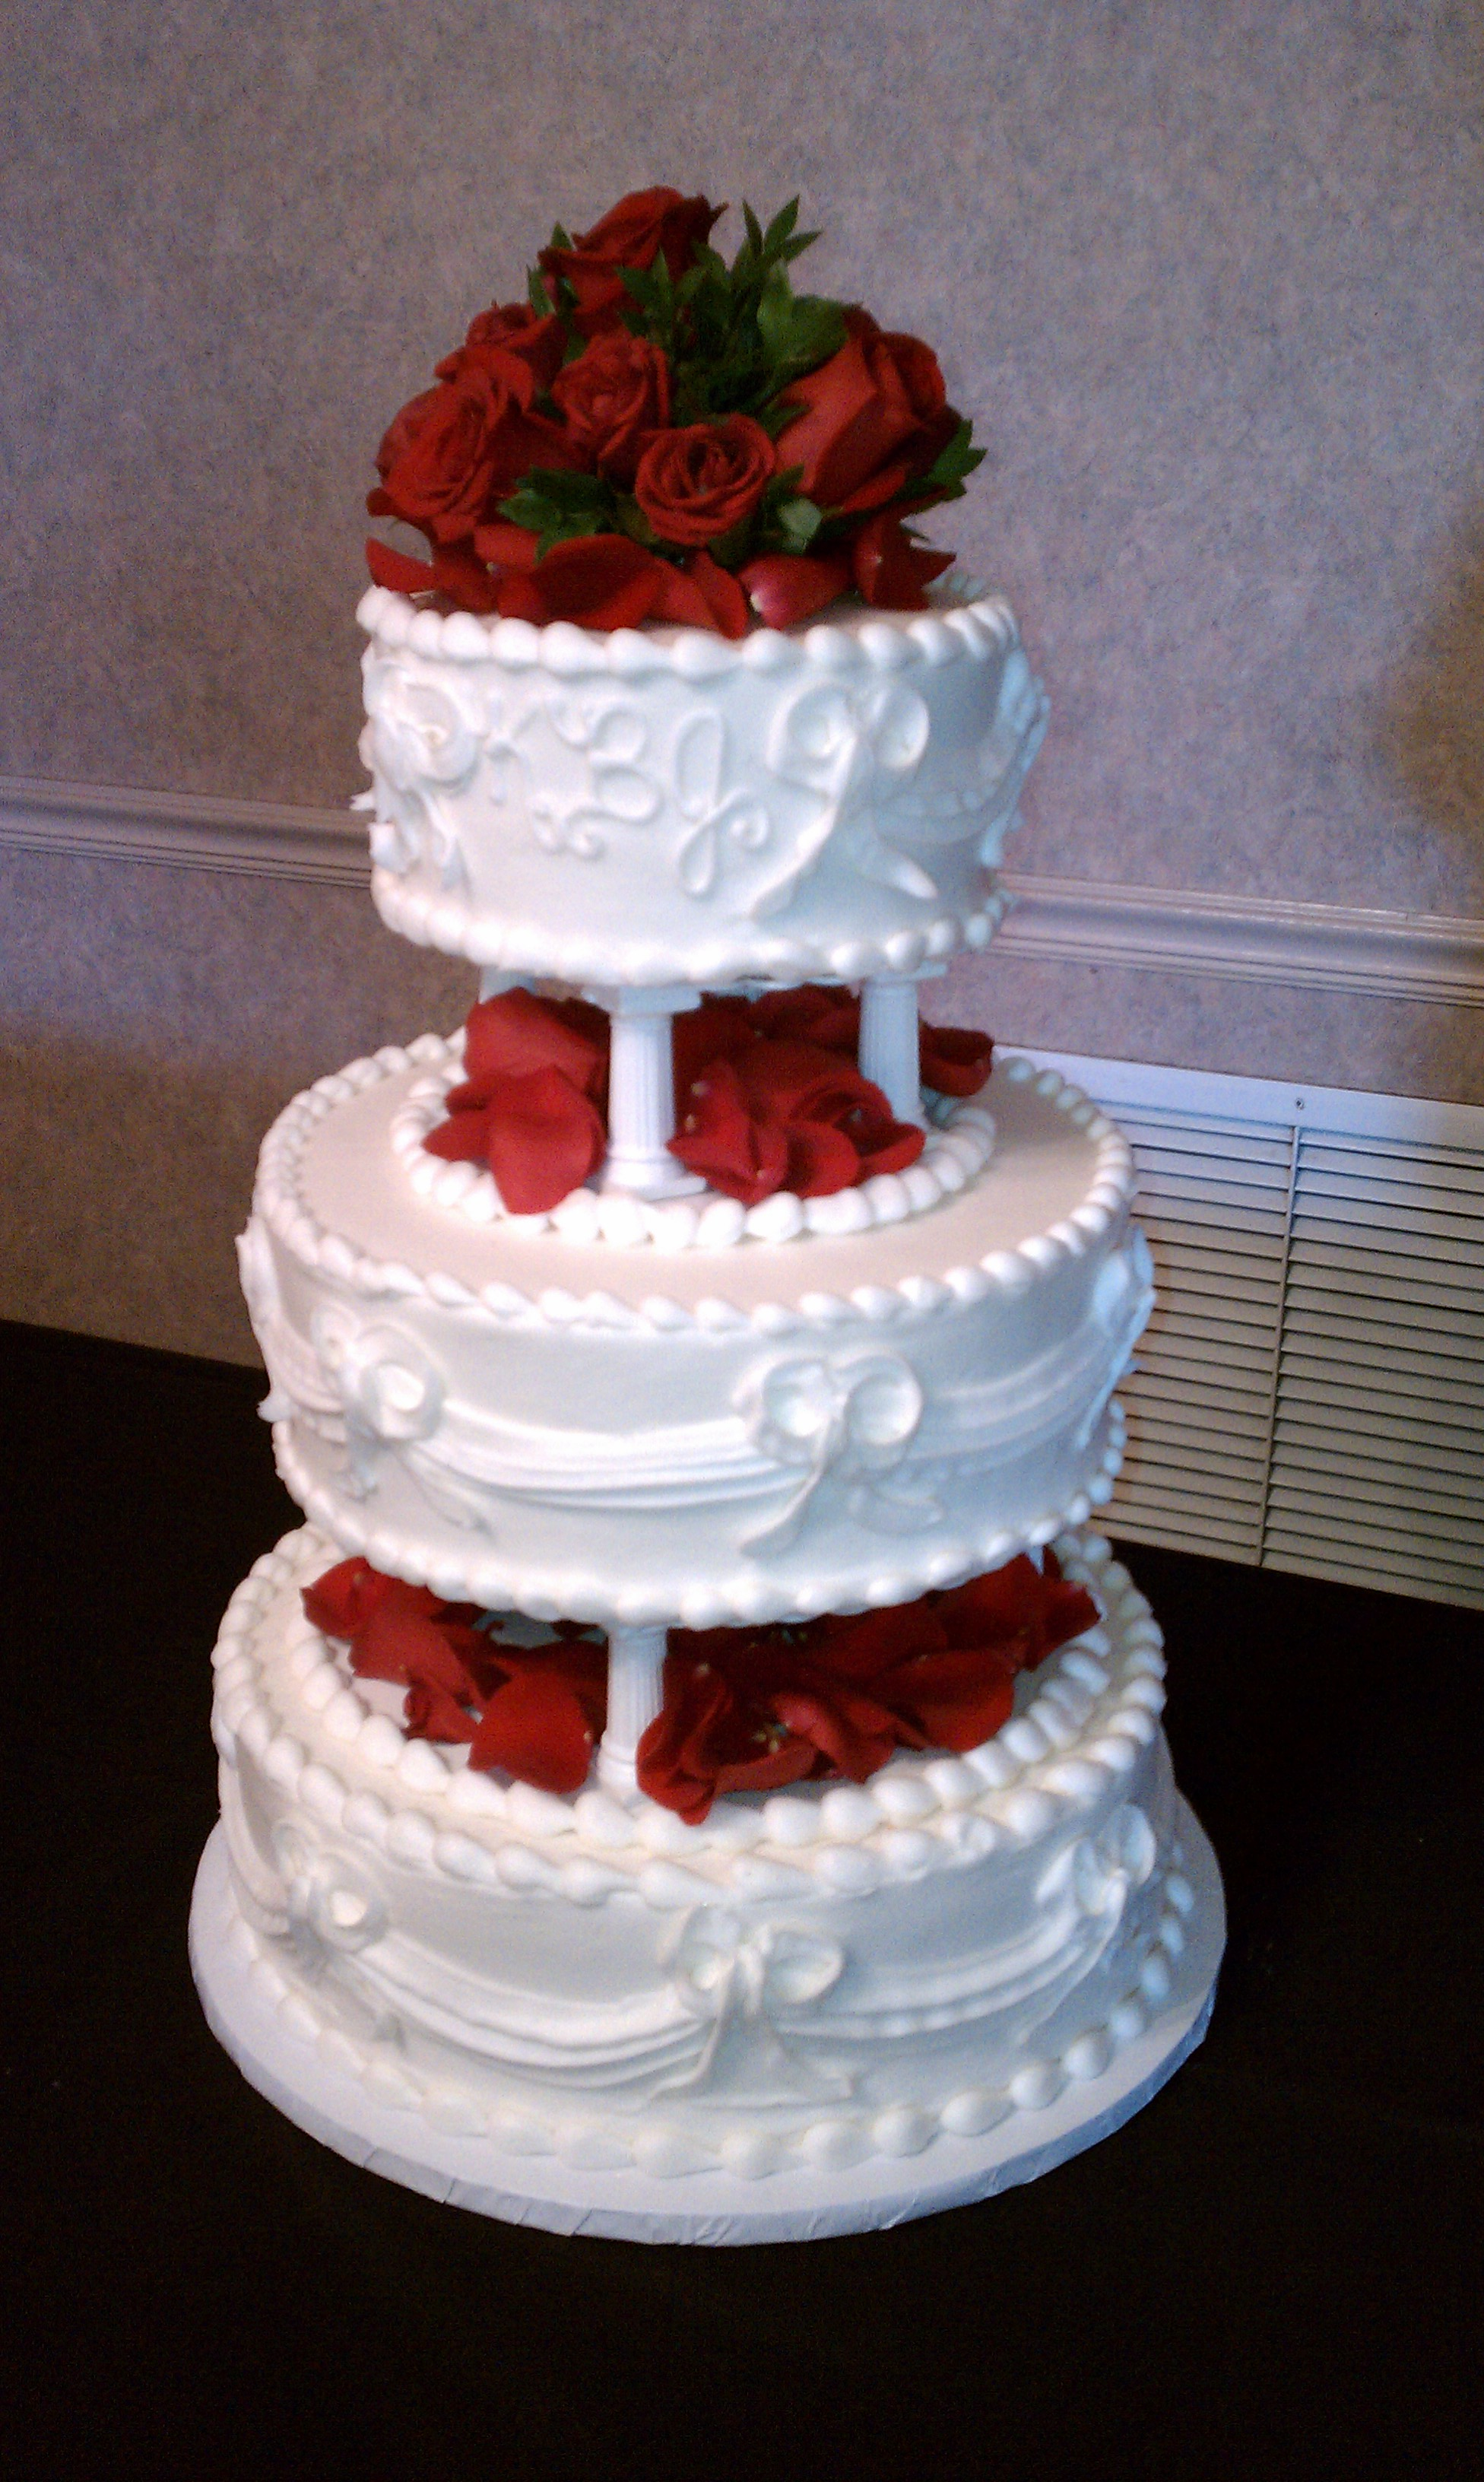 wedding cakes wedding cakes pictures View More Wedding Cakes